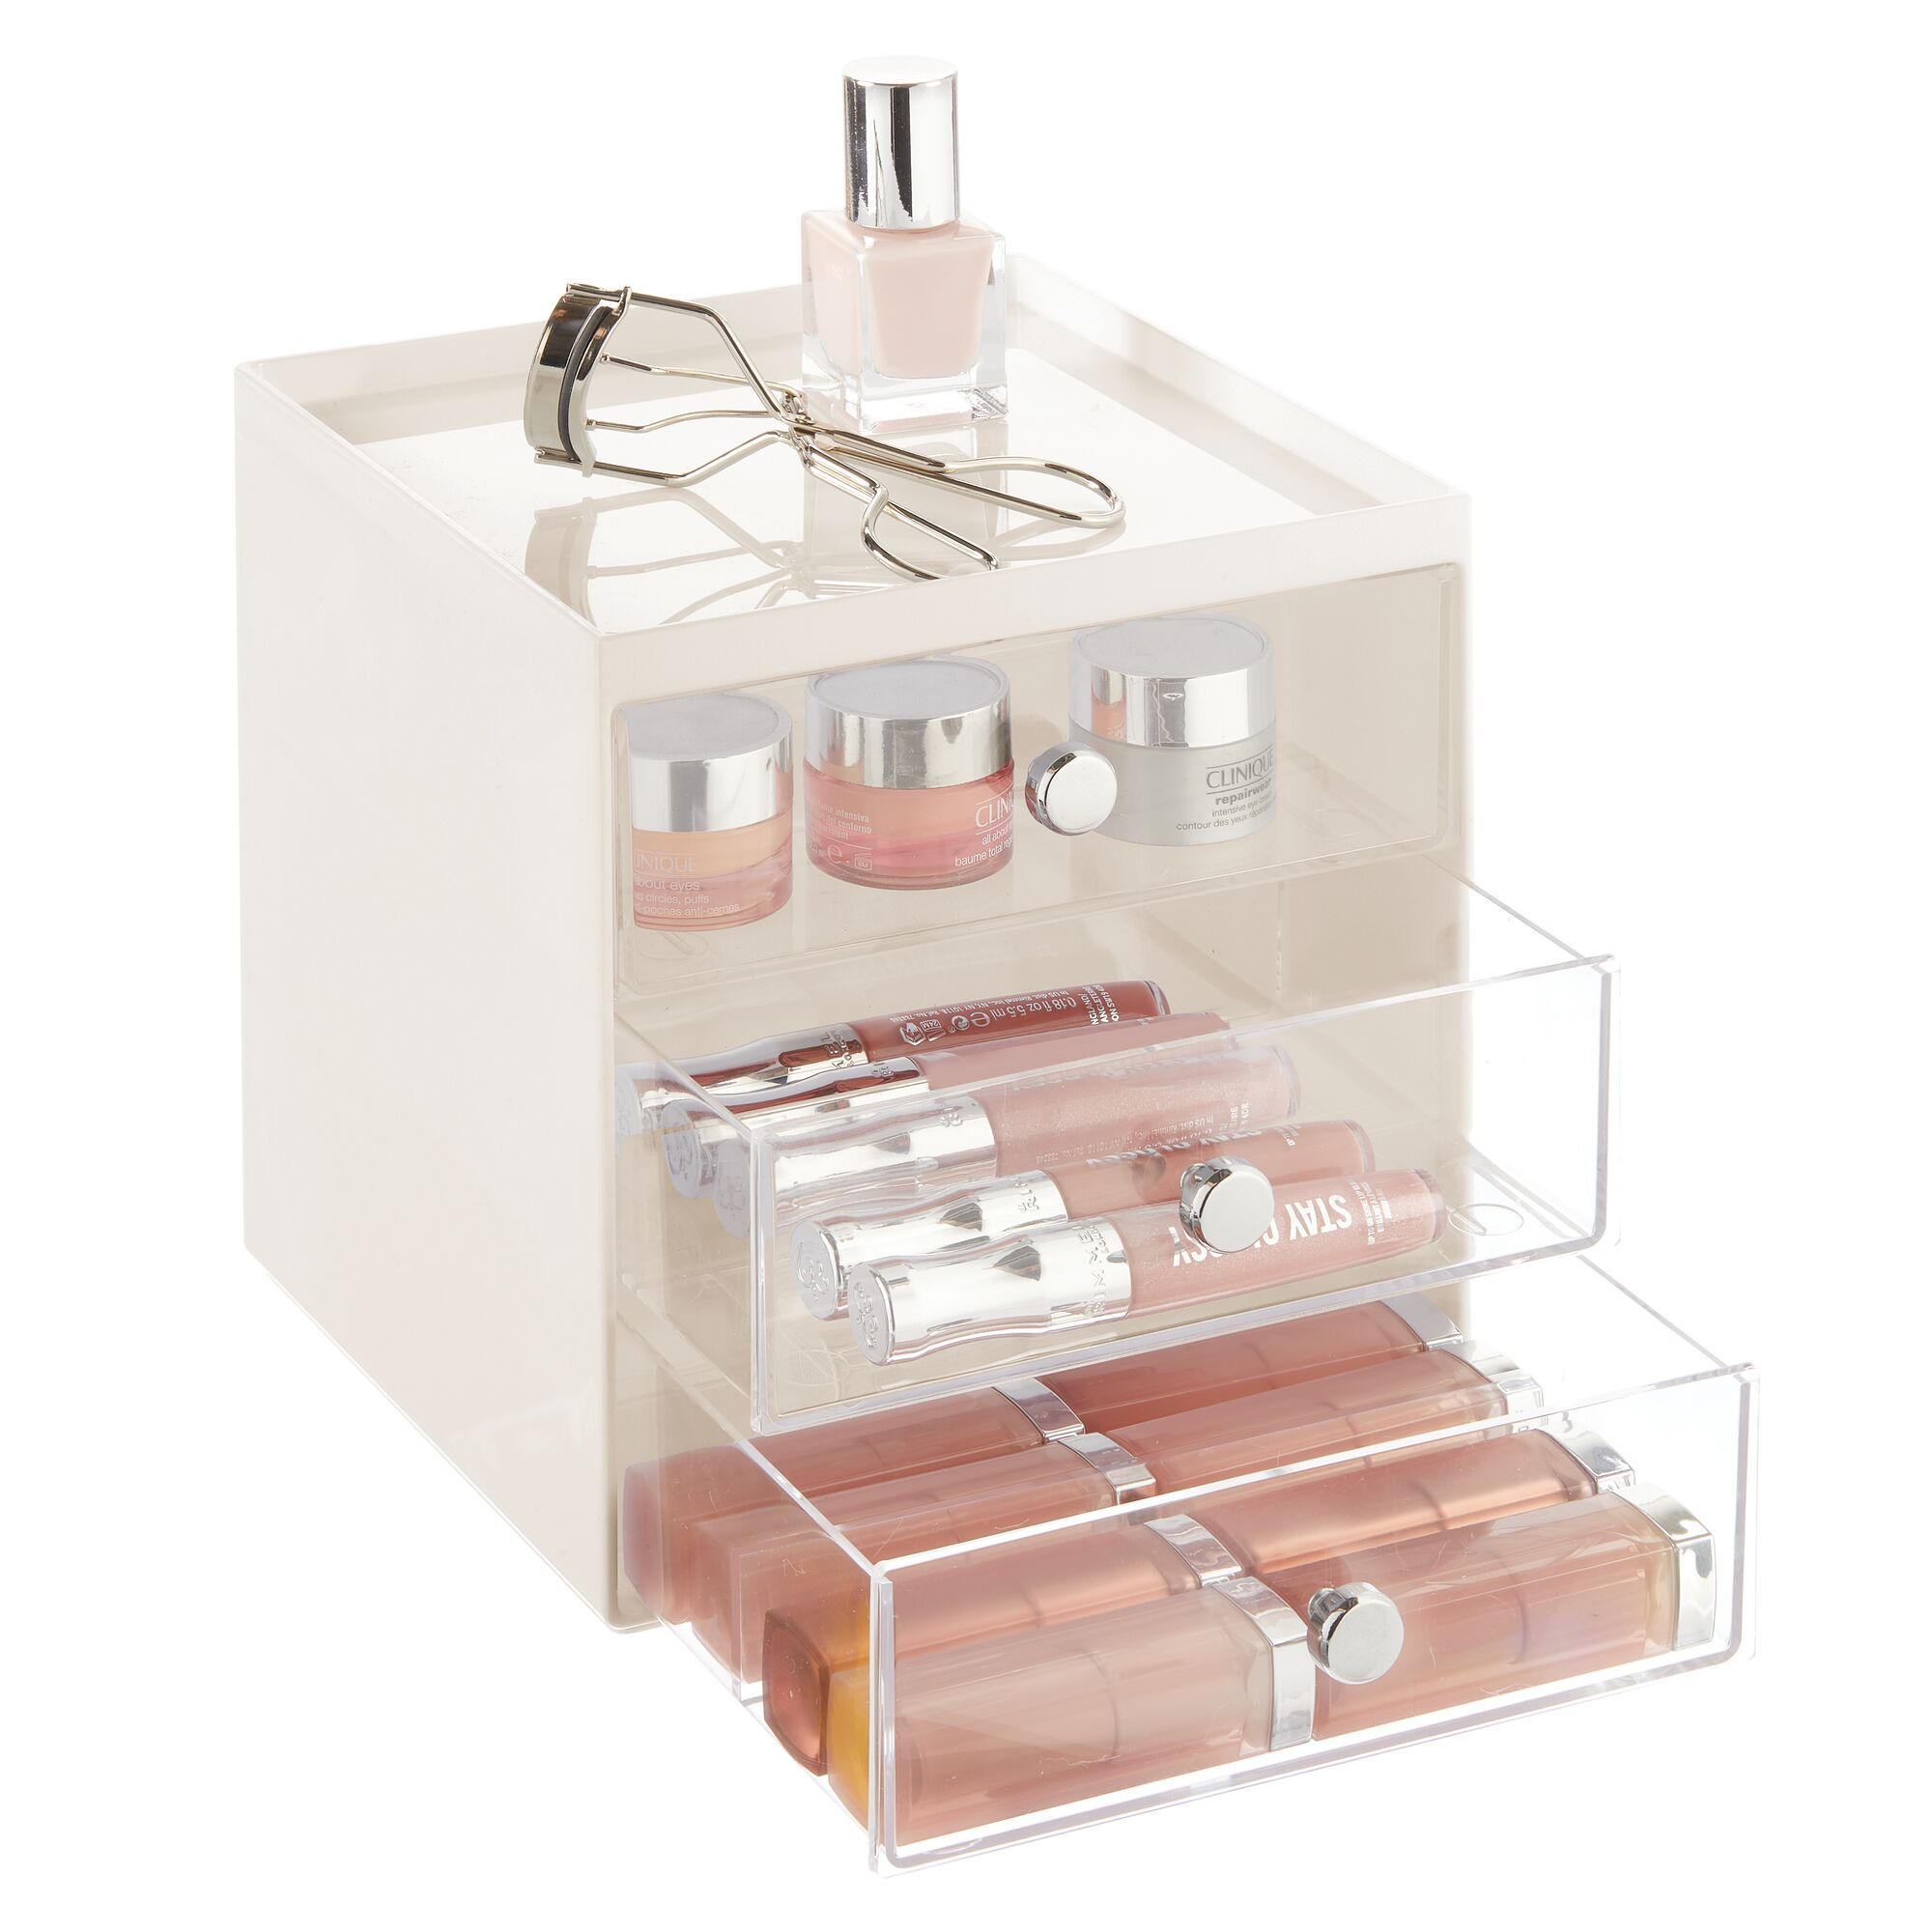 mDesign-Plastic-Makeup-Storage-Organizer-Cube-3-Drawers thumbnail 29